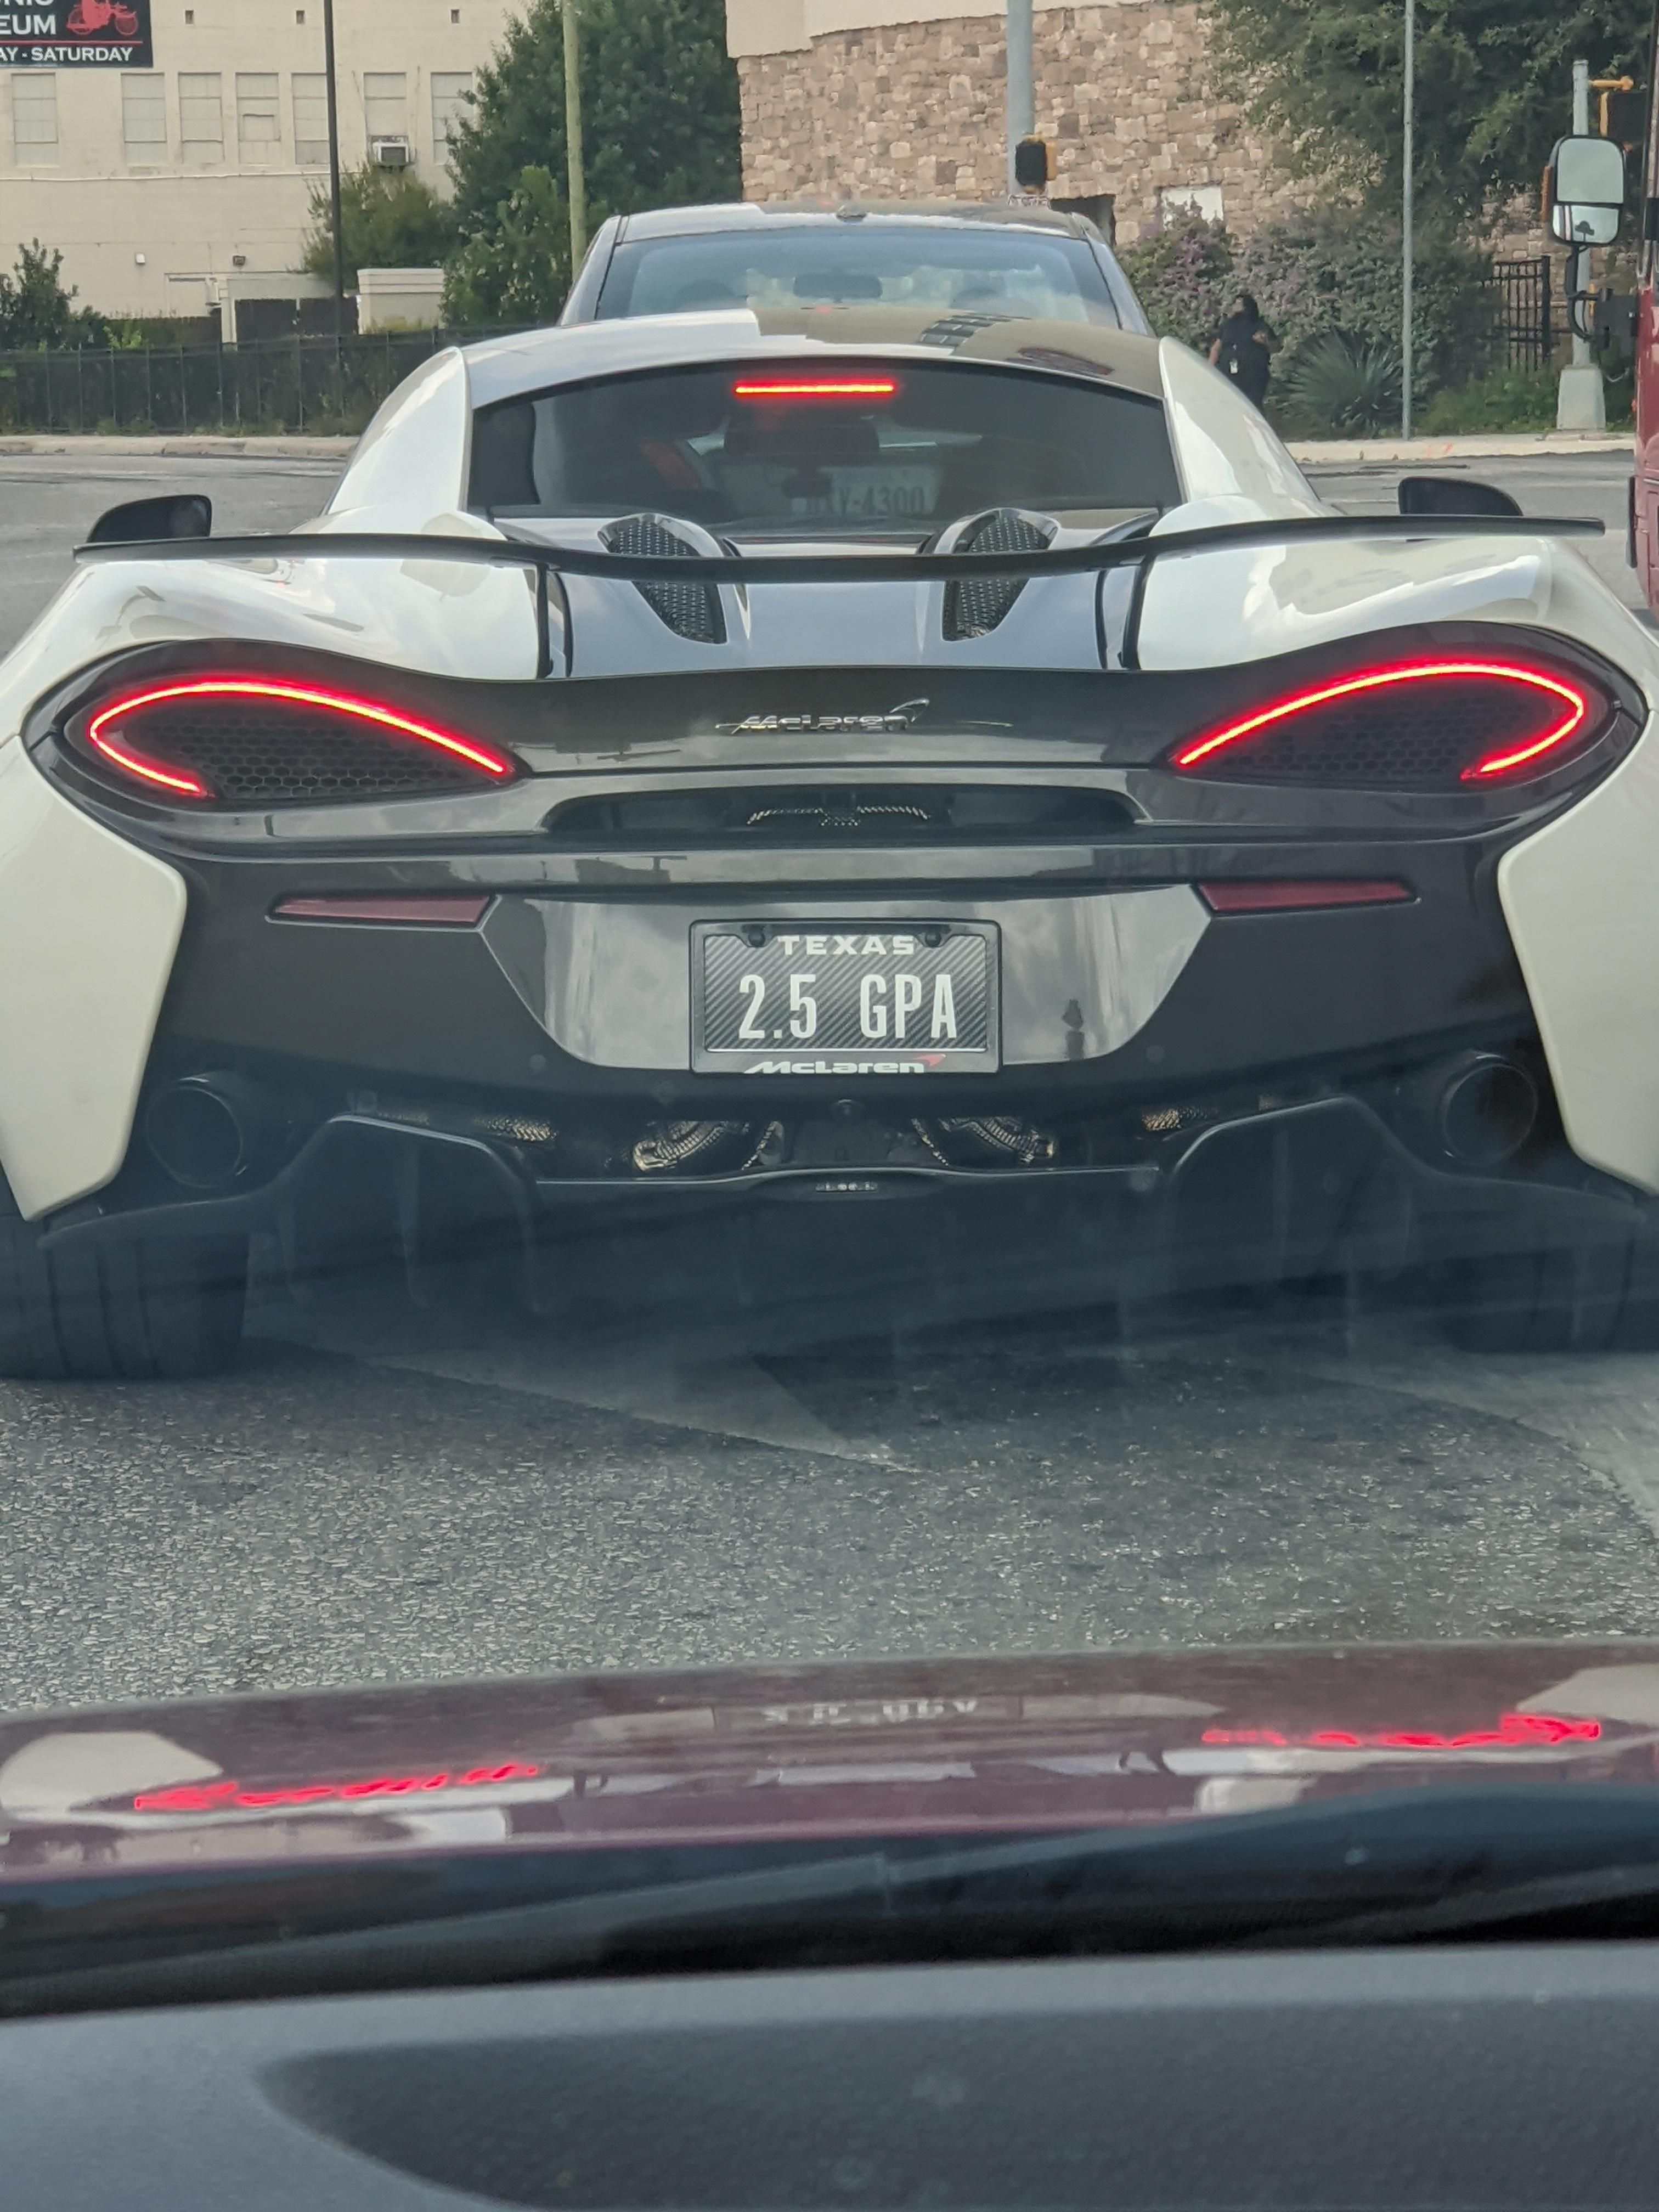 Sweet license plate on a McLaren I saw downtown